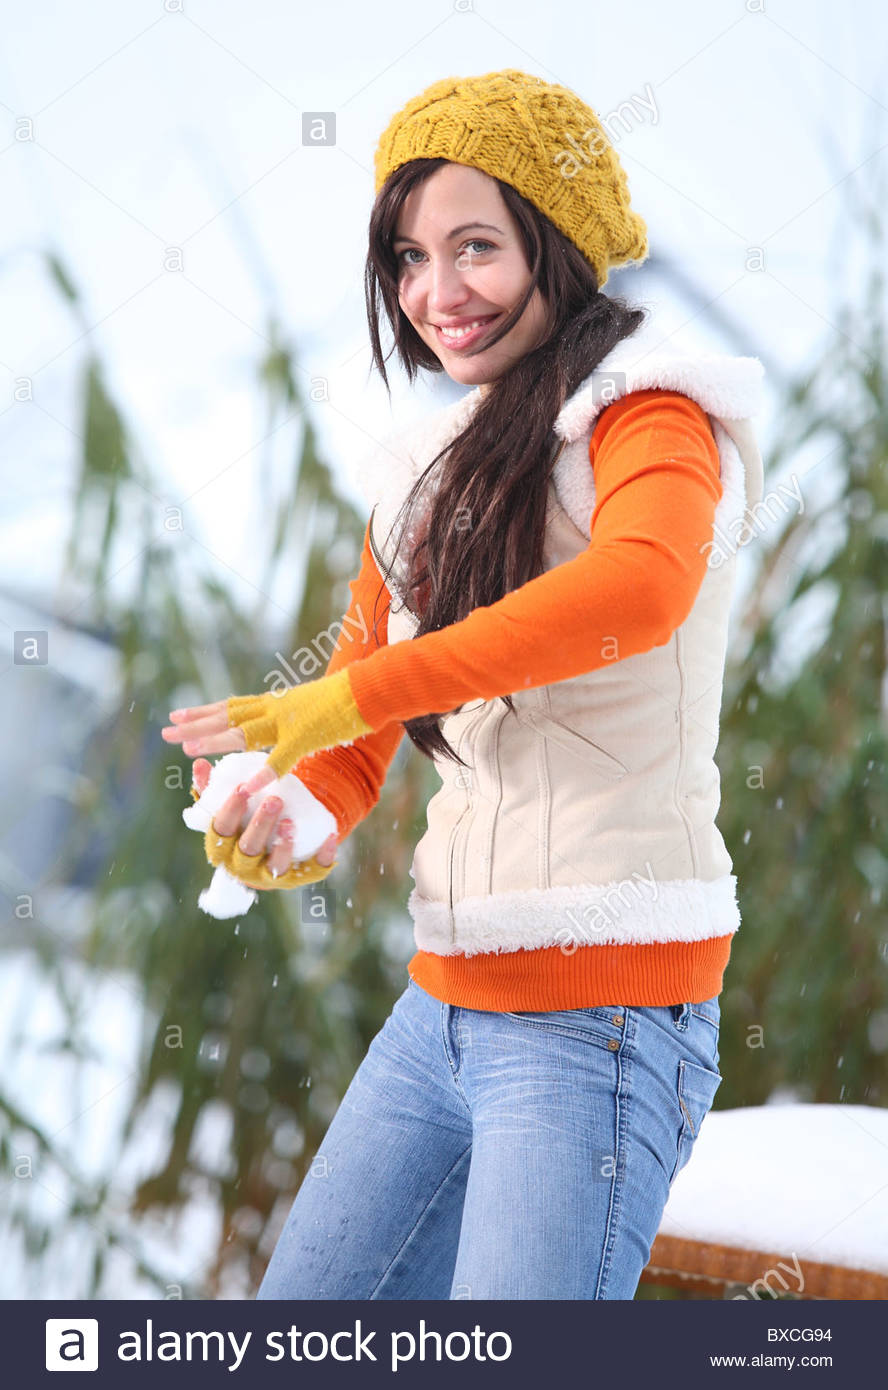 woman throwing snowball Stock Photo